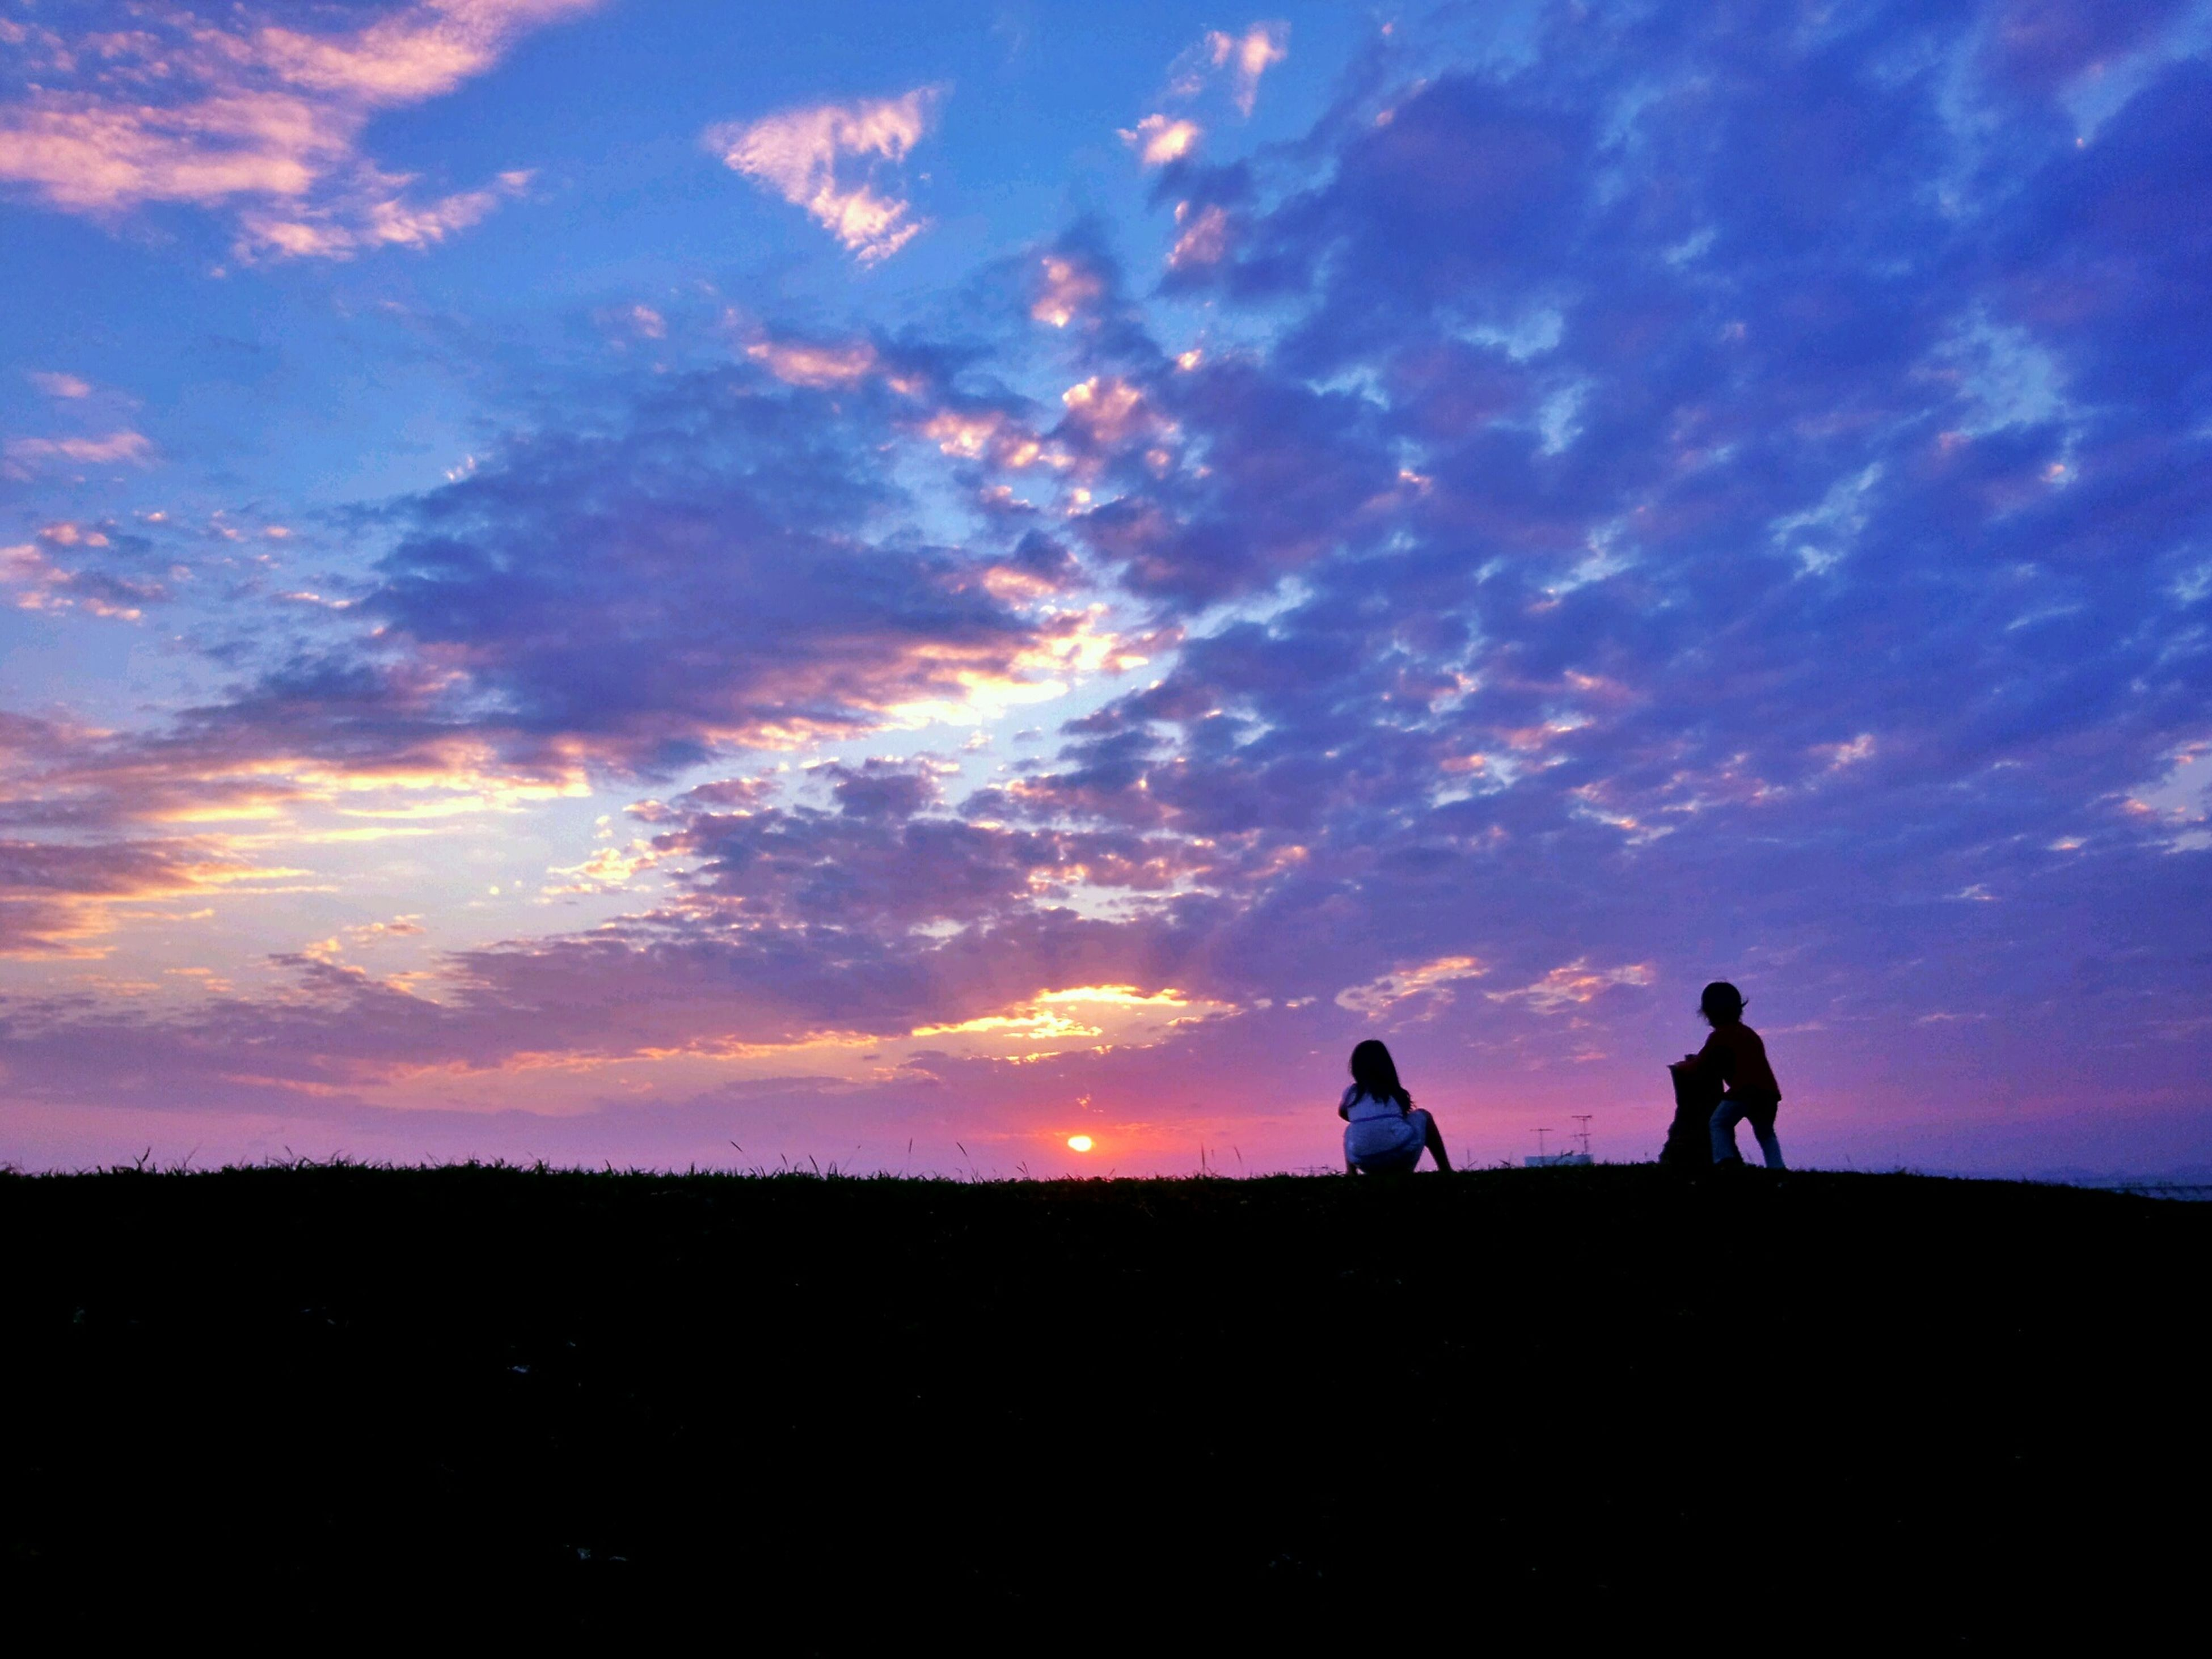 silhouette, sunset, sky, men, togetherness, lifestyles, leisure activity, beauty in nature, tranquil scene, scenics, tranquility, cloud - sky, landscape, orange color, nature, standing, bonding, person